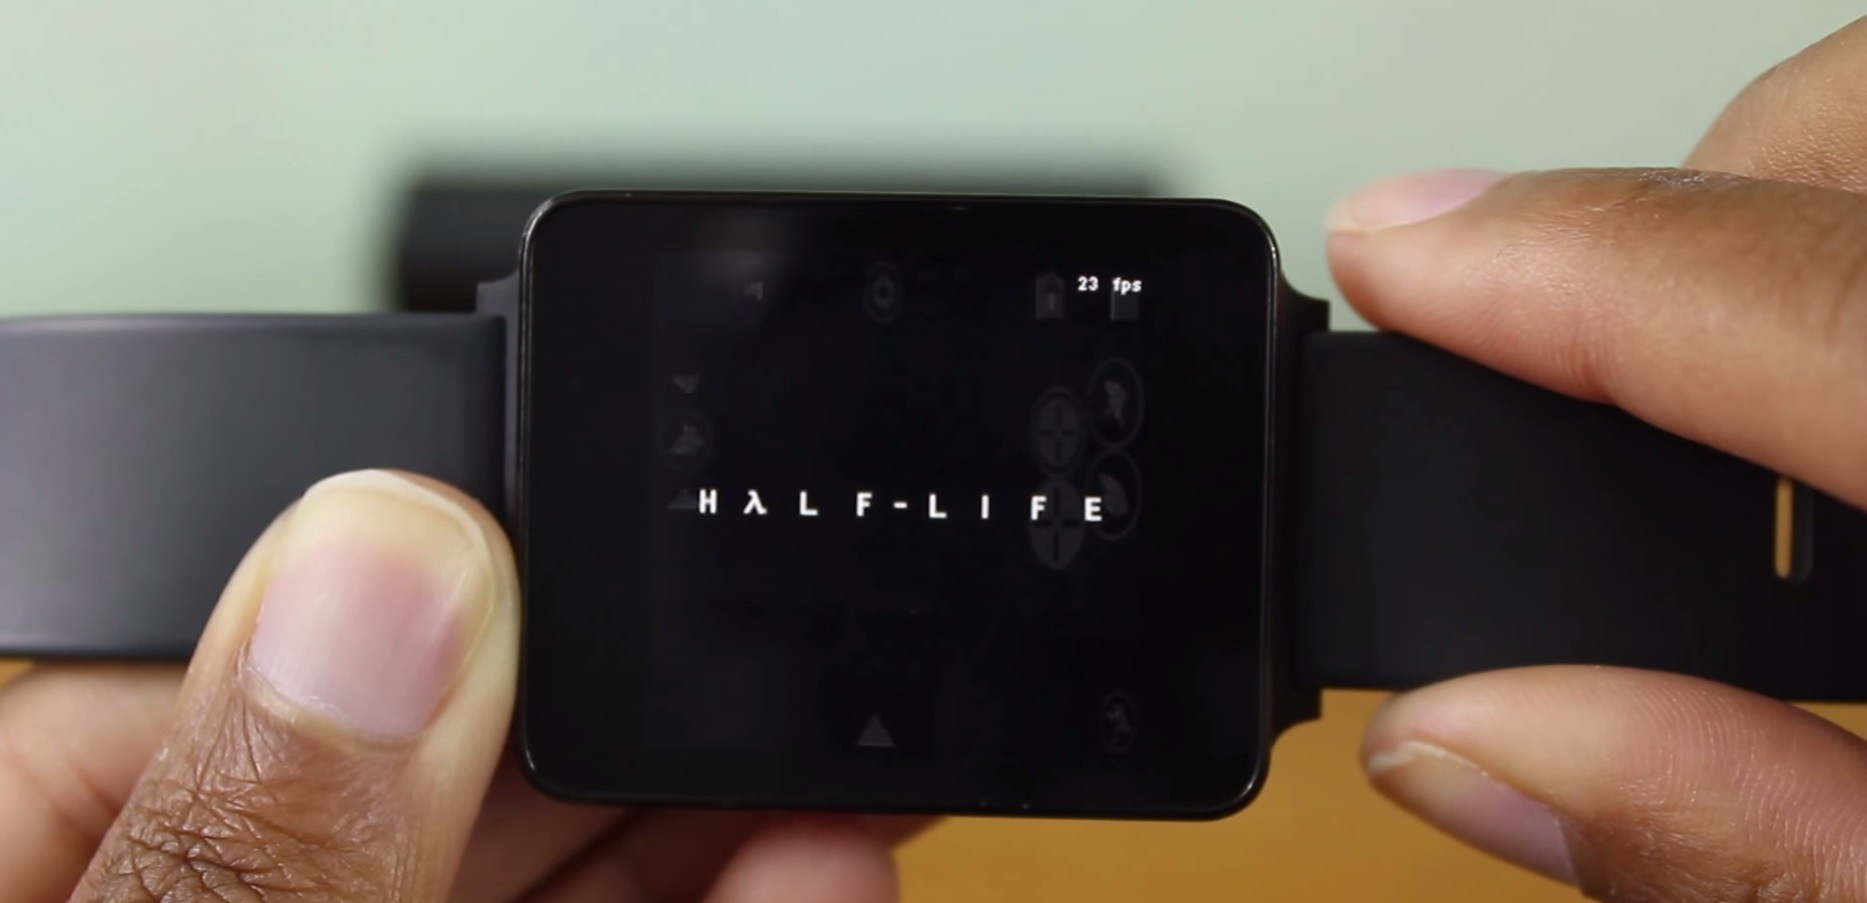 Yep, Smartwatches Will Run Half Life with Ease